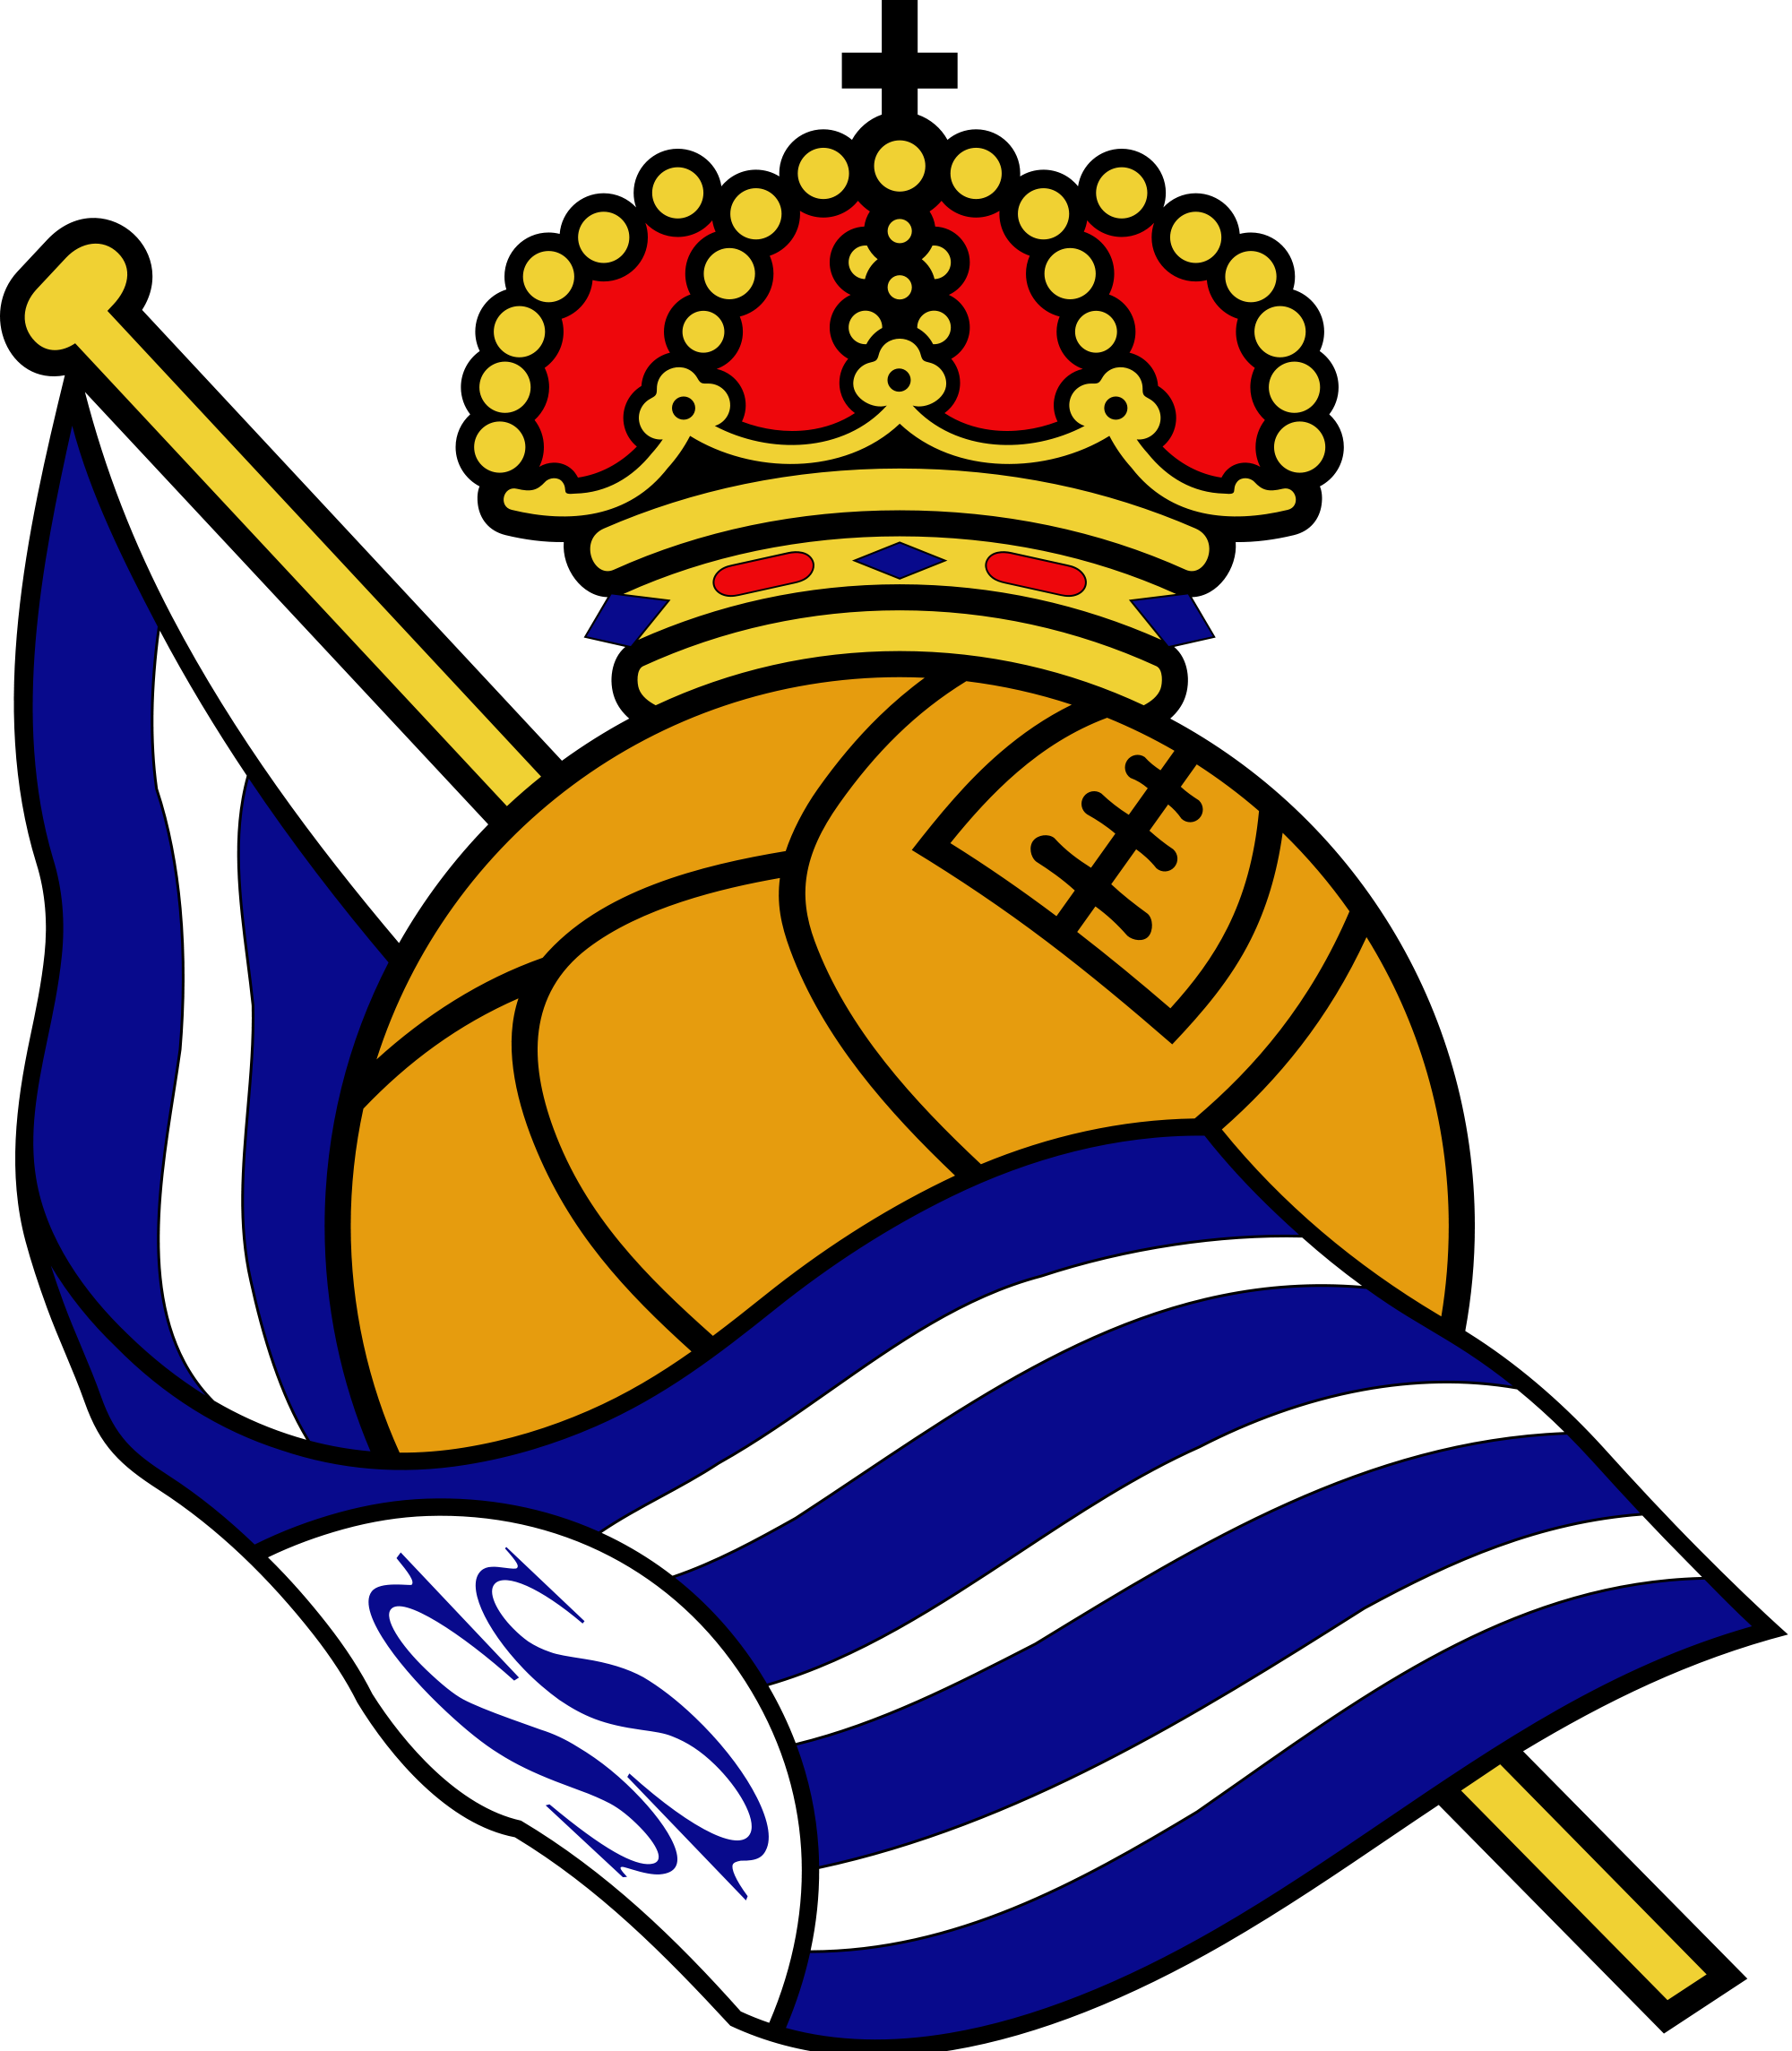 Real Sociedad de Futbol Logo Wallpaper